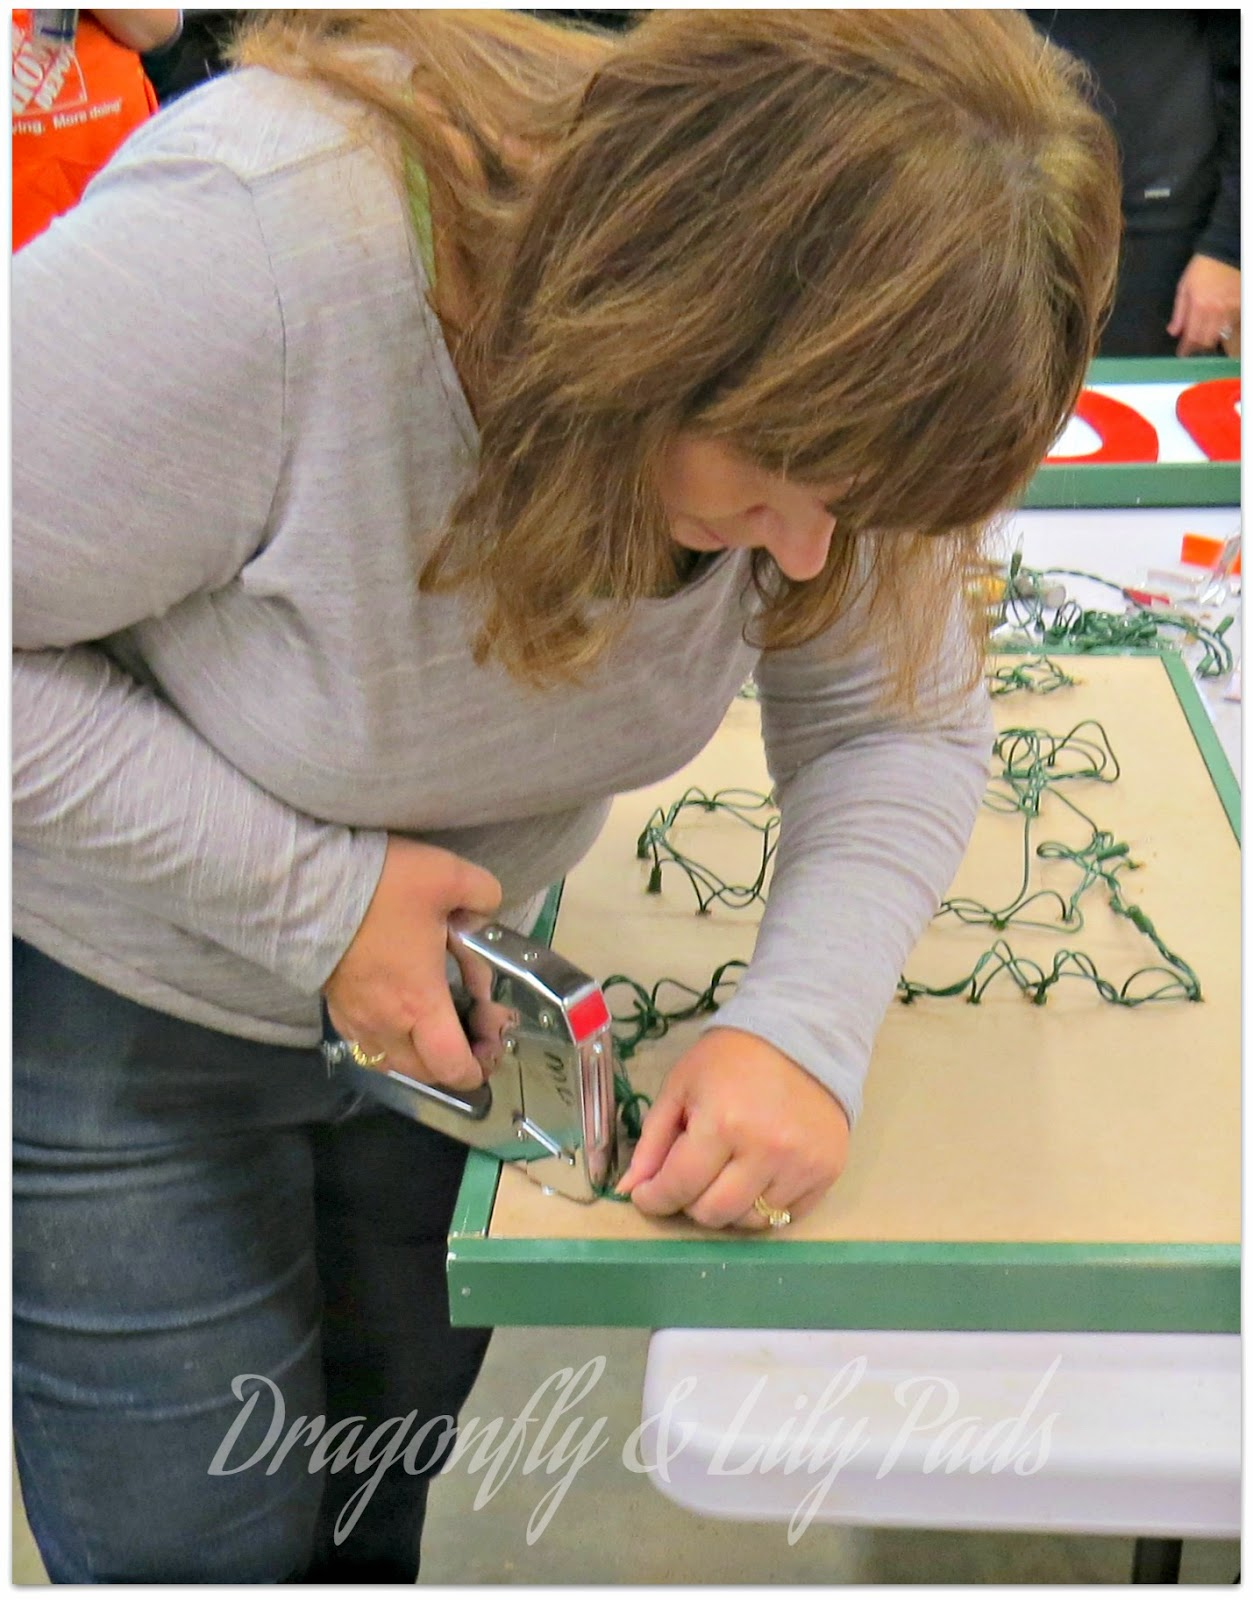 Staple Gun, Christmas Lights Home Depot Joy Marquee sign, Her It Yourself Workshop